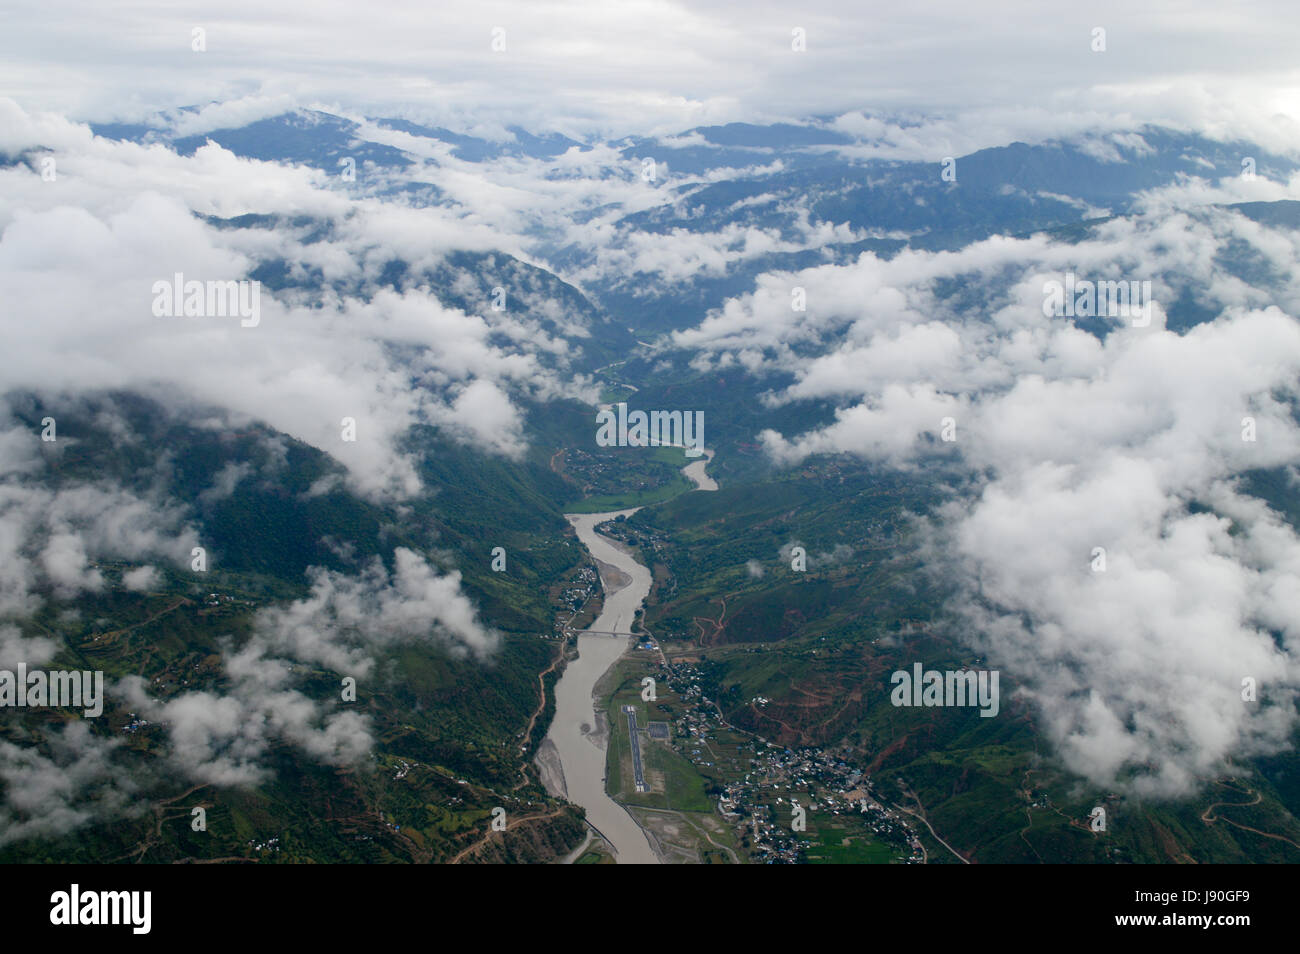 Mountains of Nepal. Beautiful helicopter view of a river valley between cloudy mountains. - Stock Image